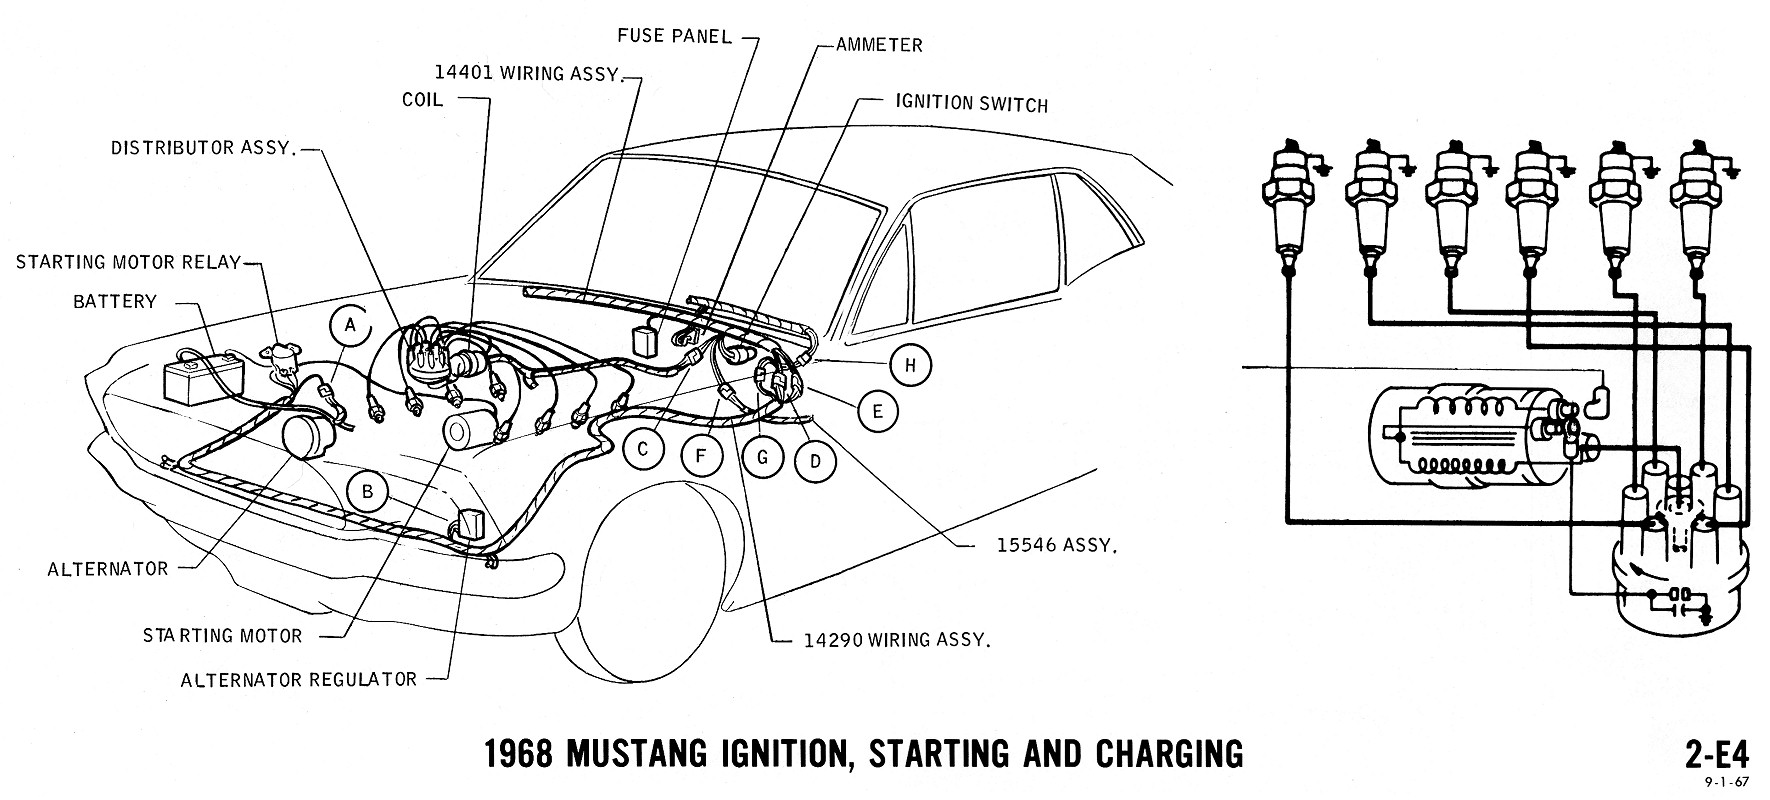 1968 mustang wiring diagram ignition starting charging 2 1968 mustang wiring diagrams and vacuum schematics average joe 68 mustang wiring harness at gsmportal.co